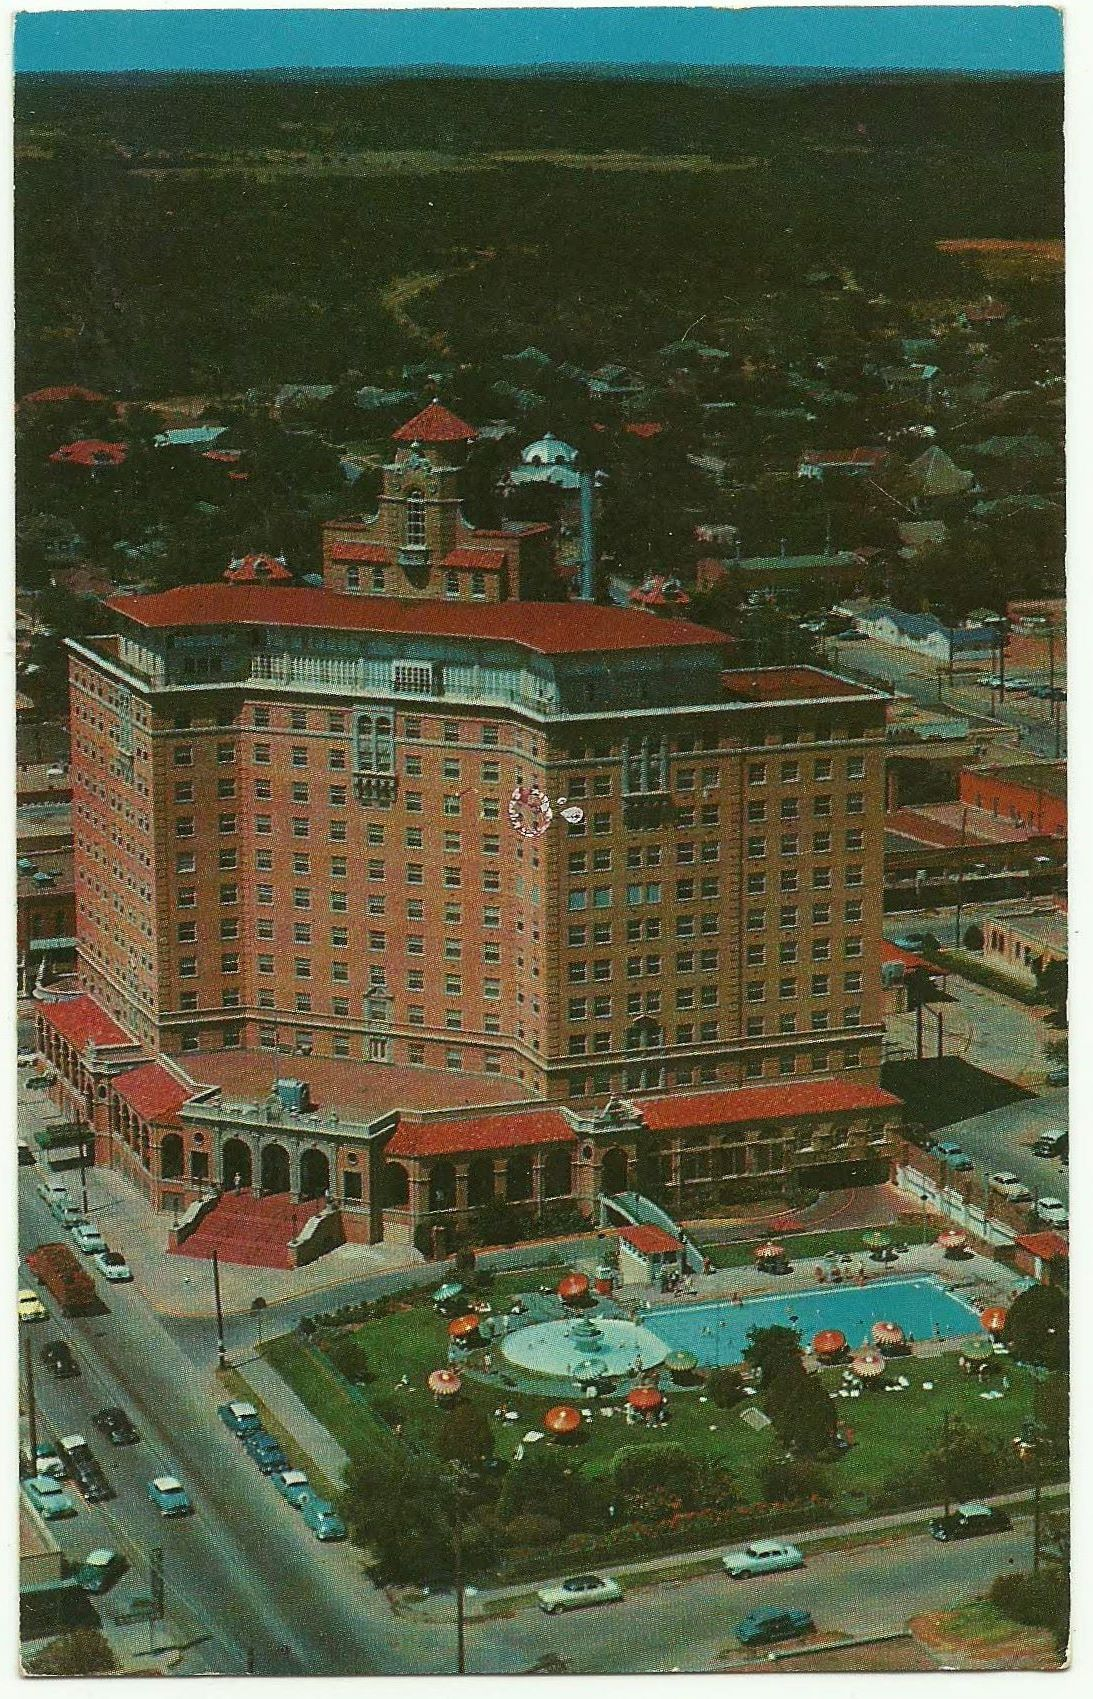 Baker Hotel Mineral Wells Tx Postmarked 1958